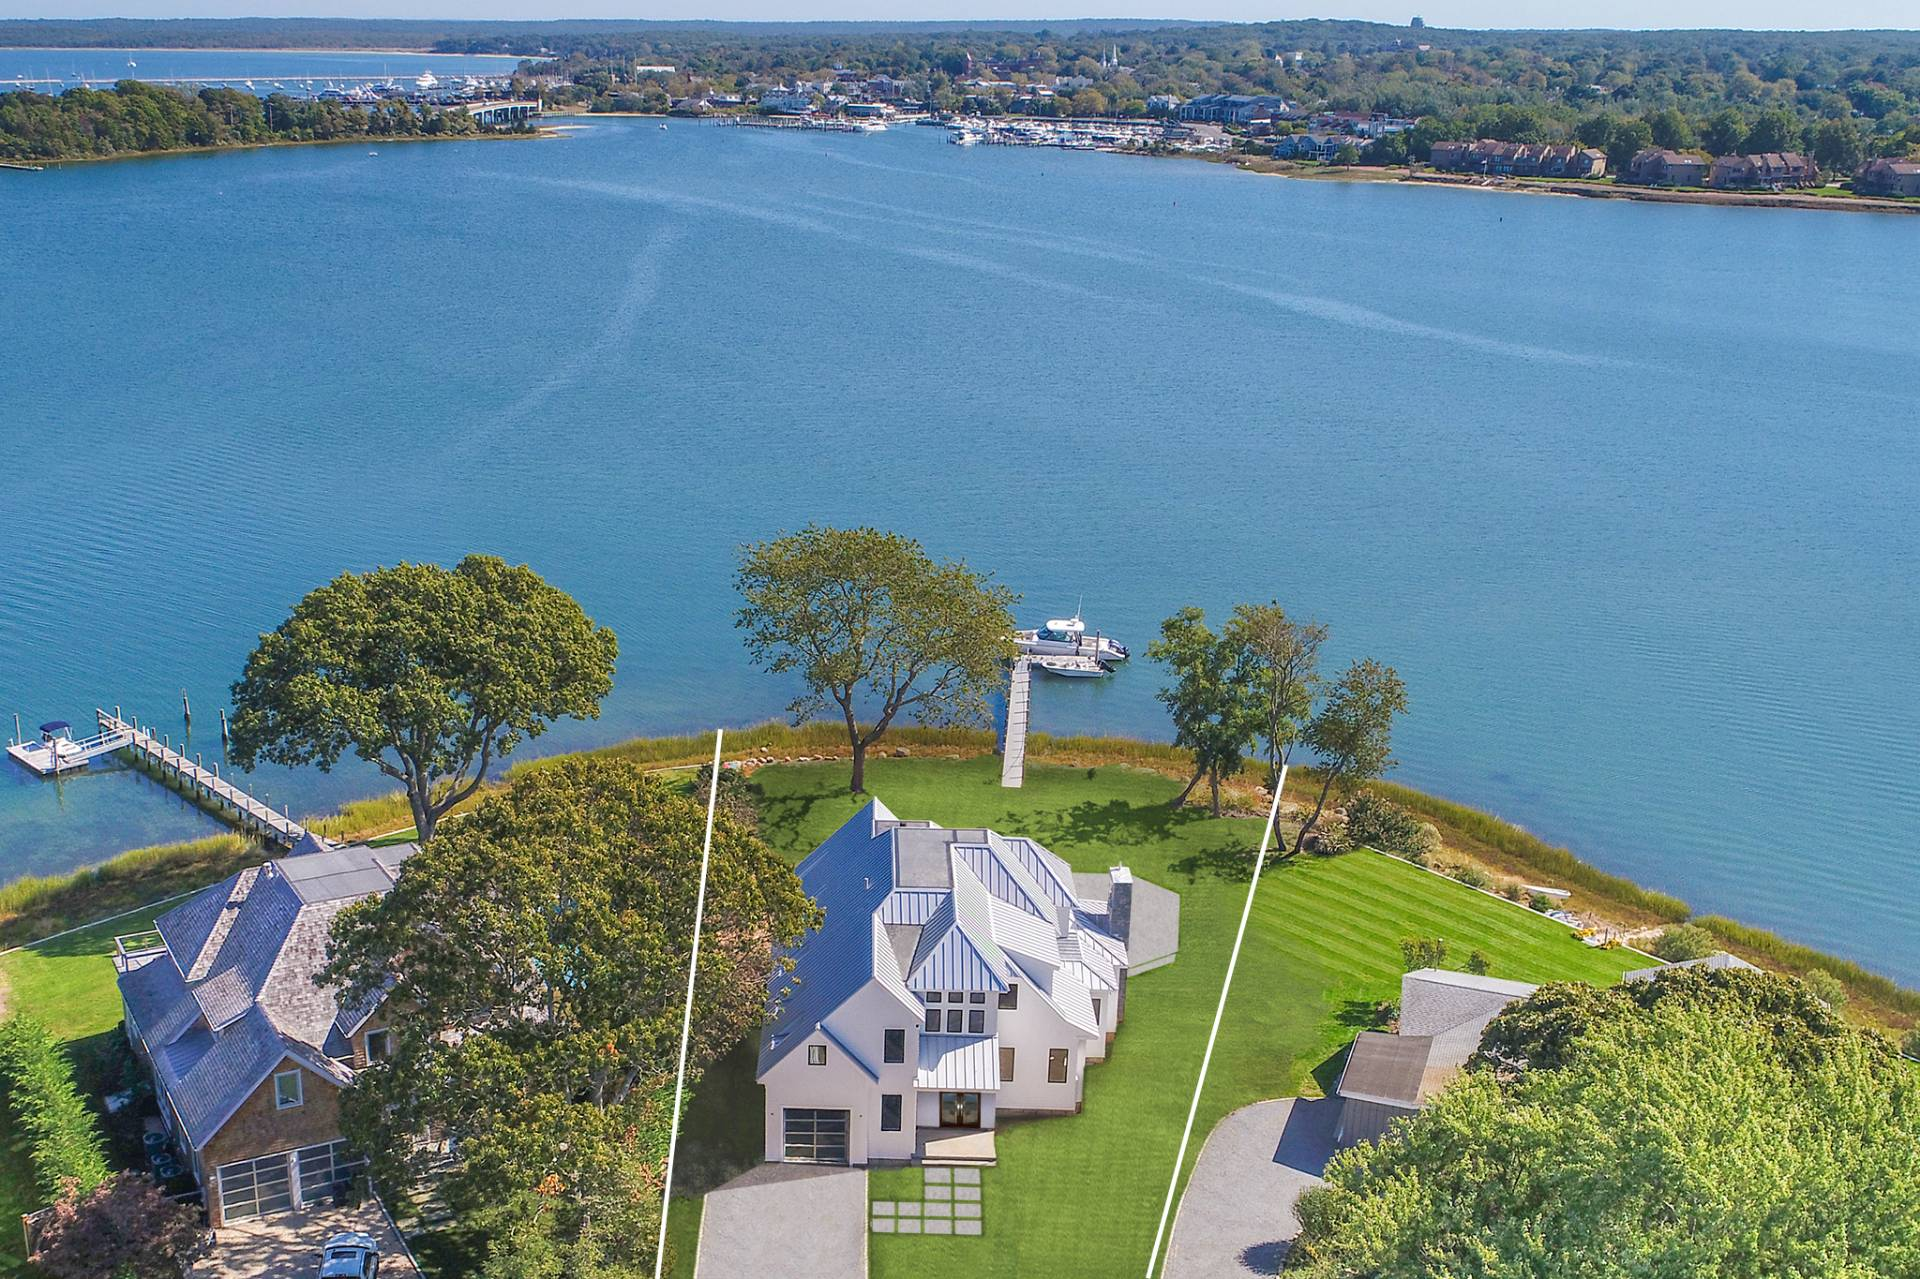 Single Family Home for Sale at Spectacular New Sag Harbor Waterfront 82 Harbor Drive, Sag Harbor, New York